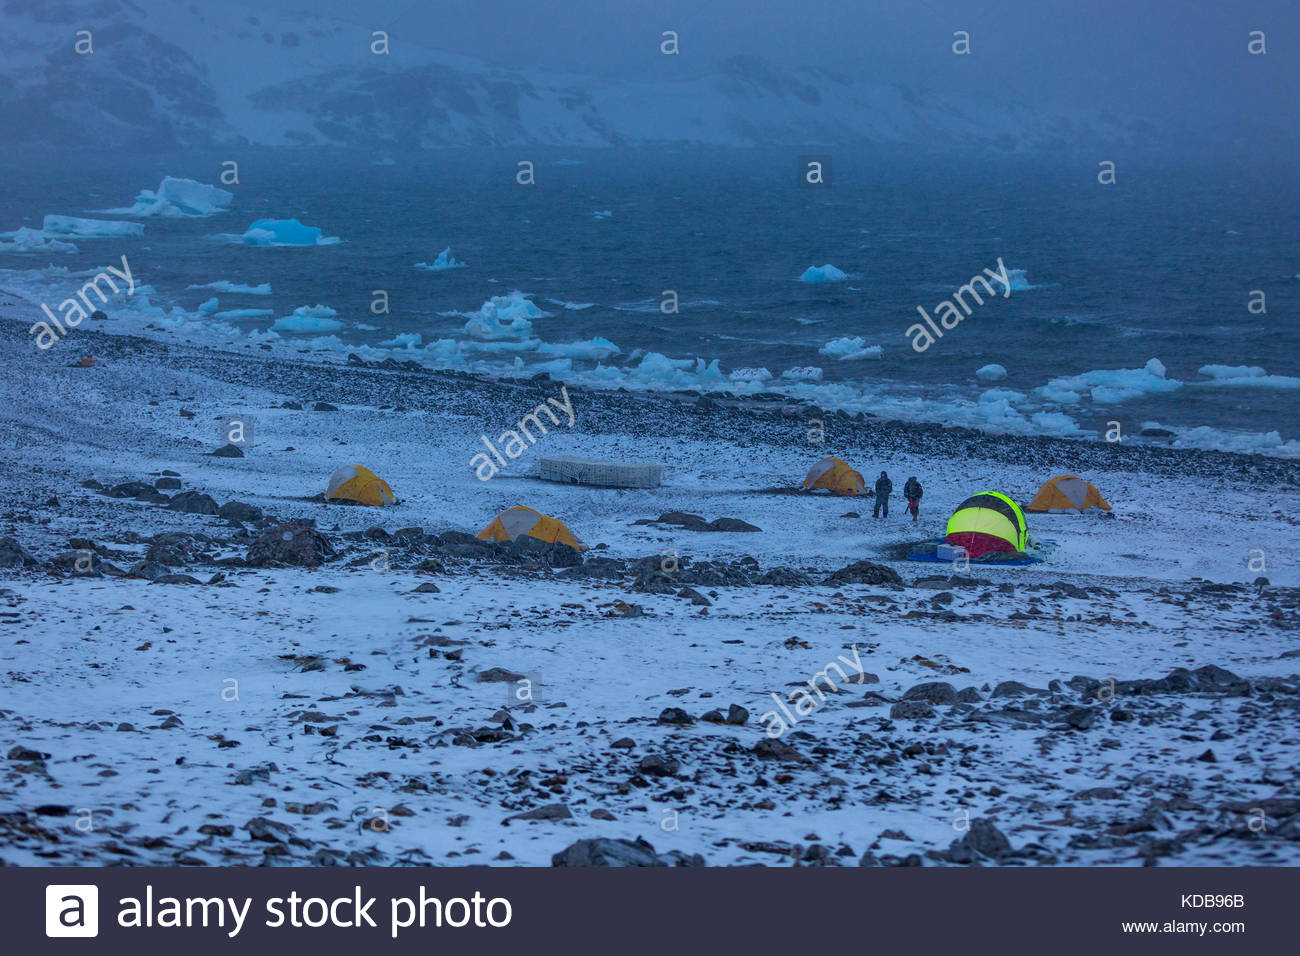 Two researchers walking near camp in Antarctica. - Stock Image